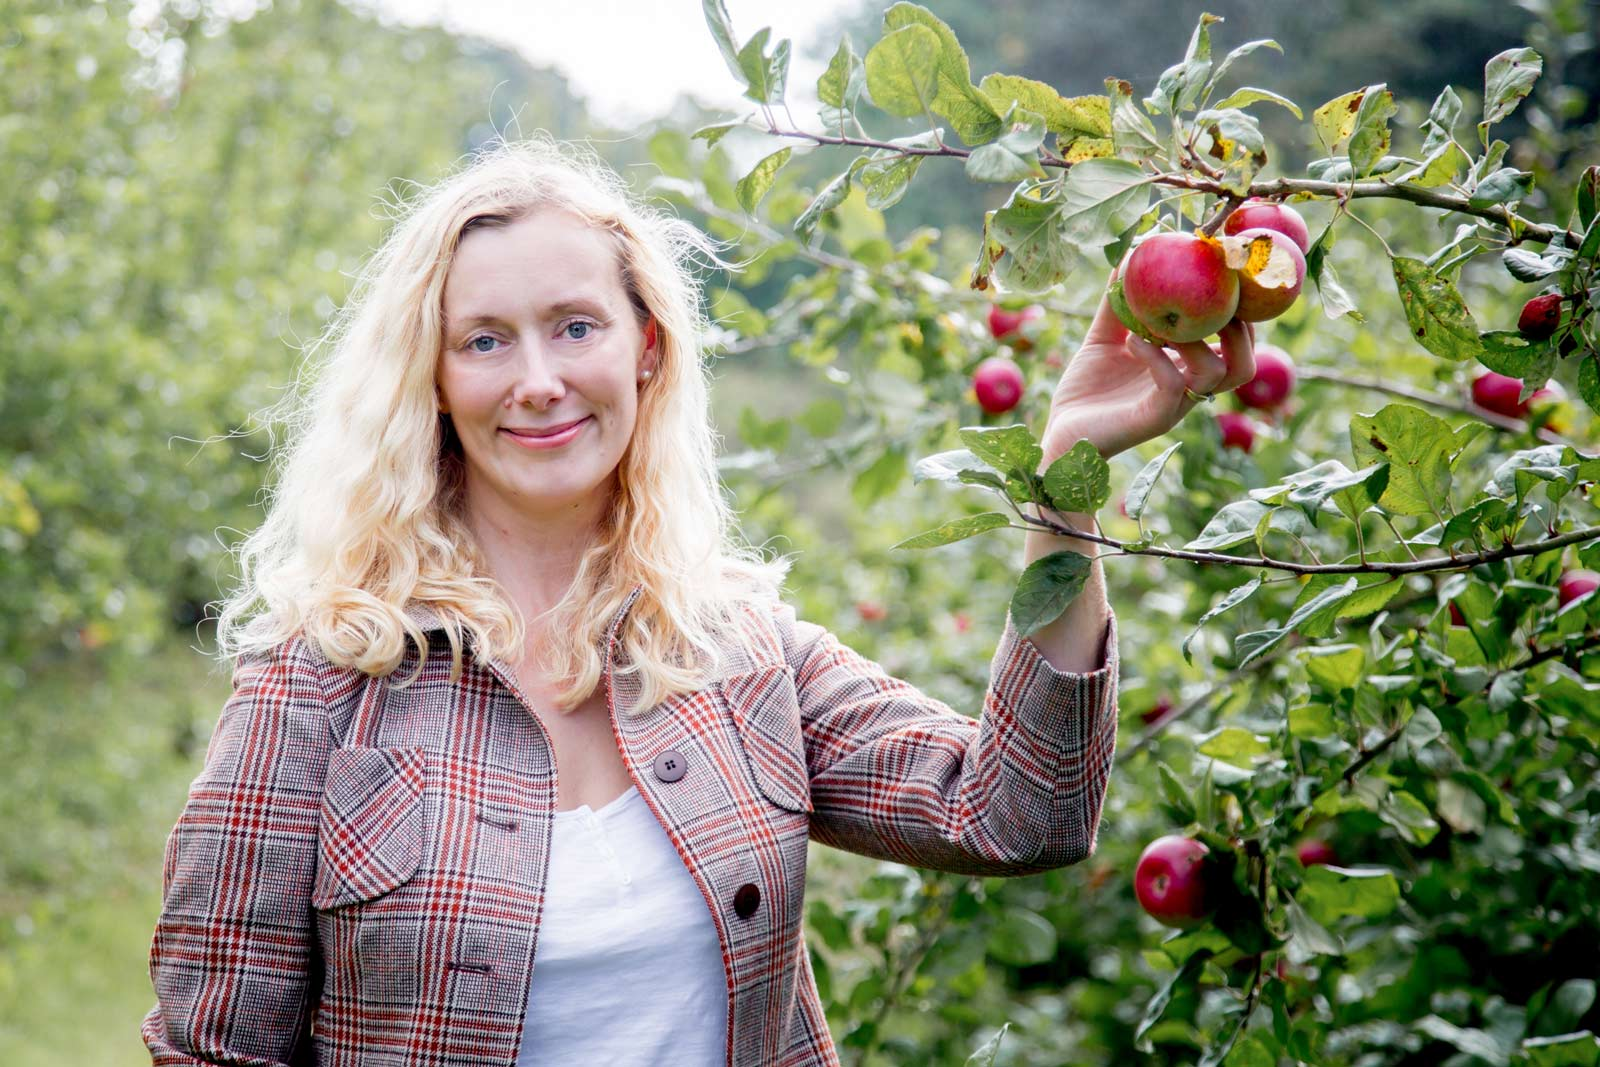 personal branding photo shoot apple producers farmers